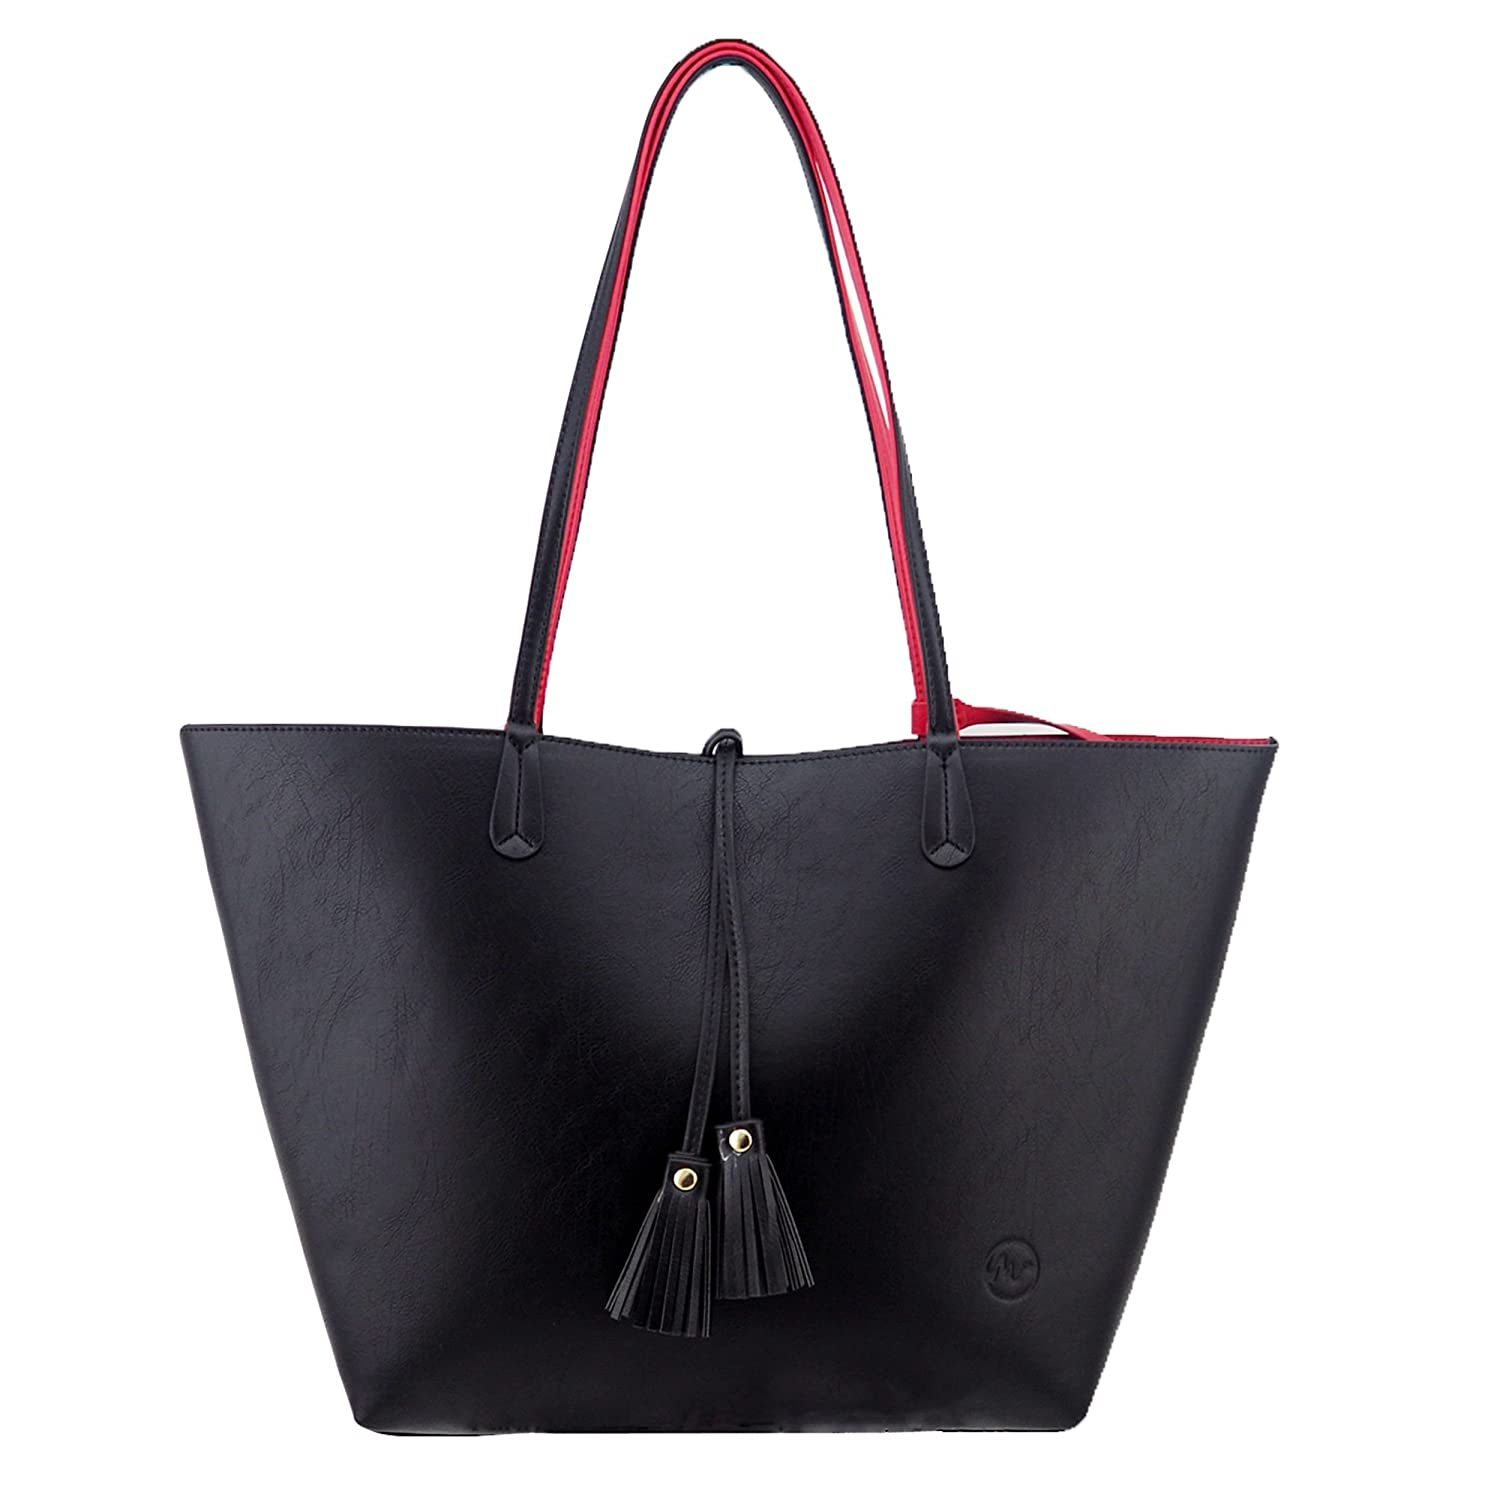 minch k05 pu leather designer tote purses and handbags